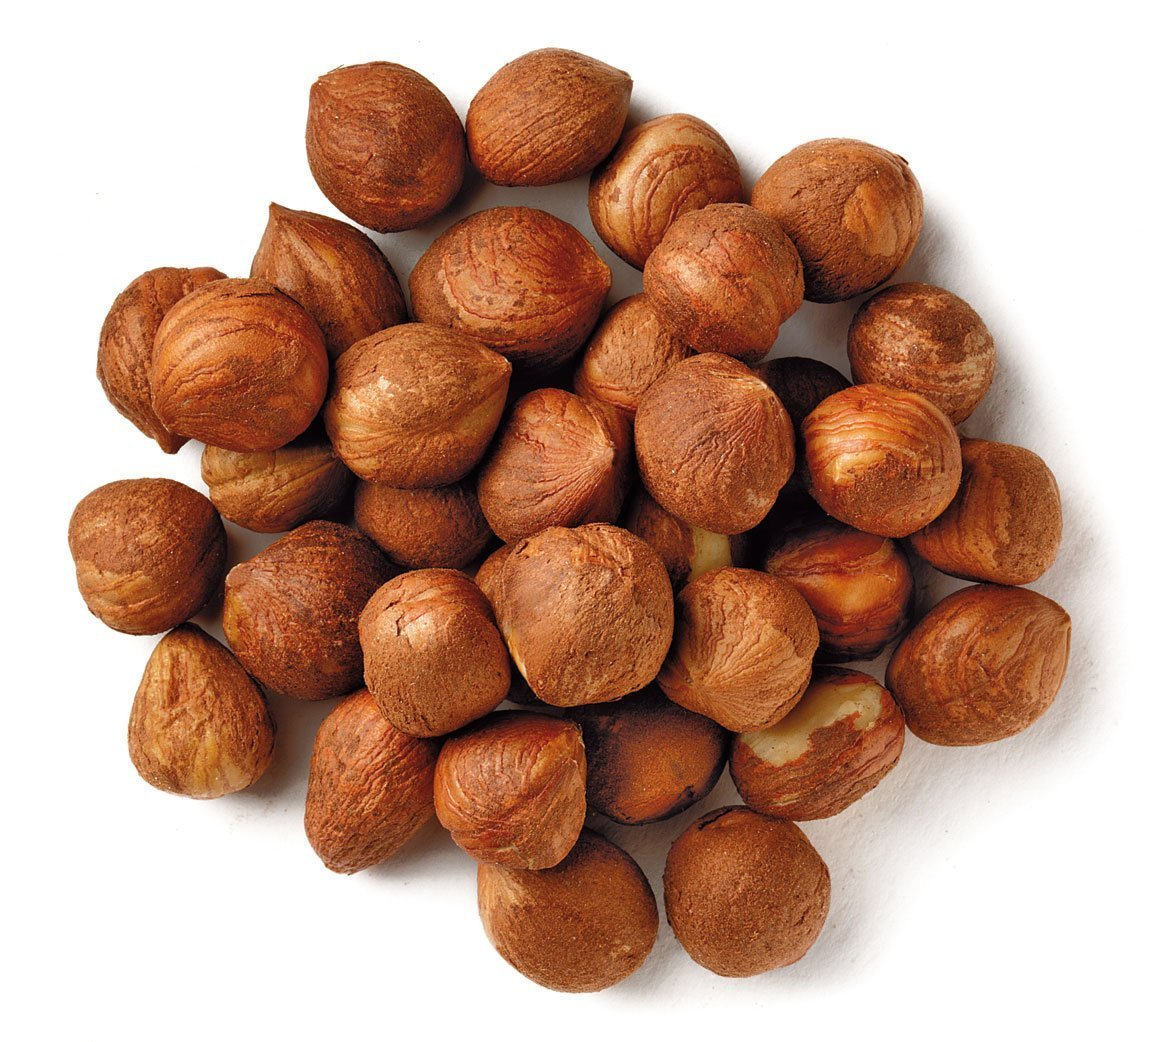 Anna and Sarah Raw Oregon Hazelnuts (Filberts) in Resealable Bag, 2 Lbs